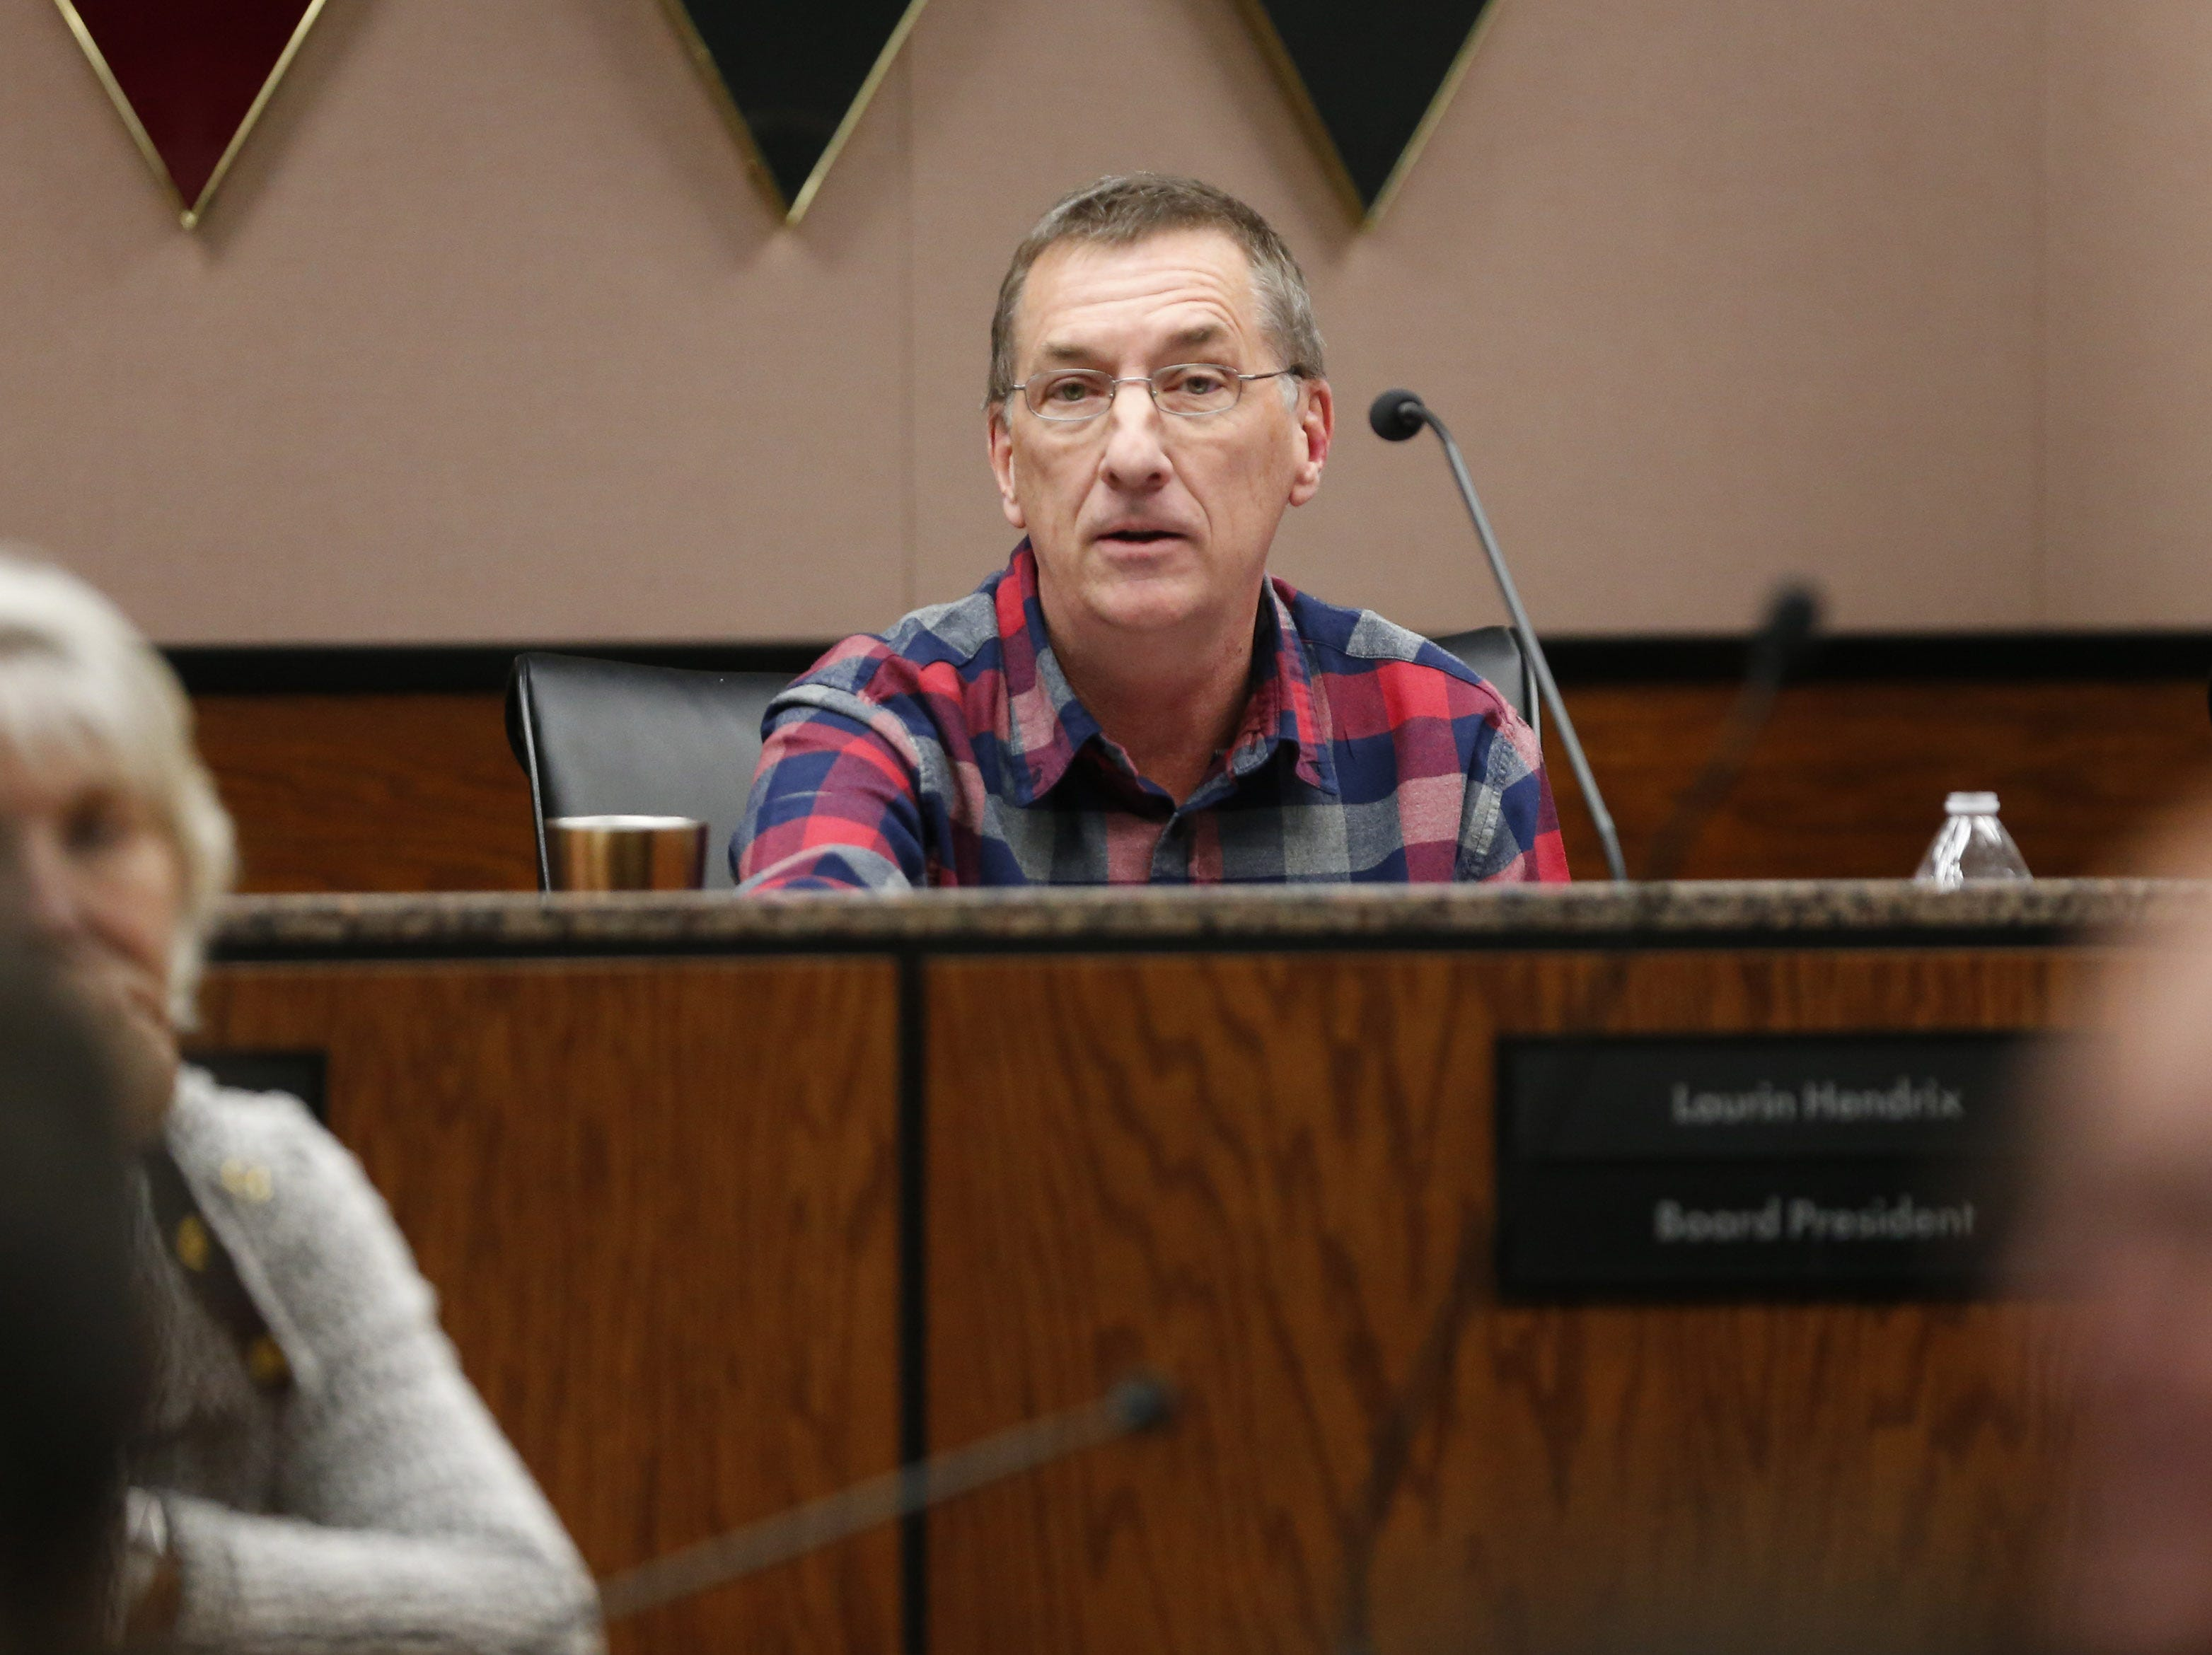 Board President Laurin Hendrix speaks after resigning during a special meeting of the Maricopa County Community College District Governing Board in Tempe January 15, 2019.